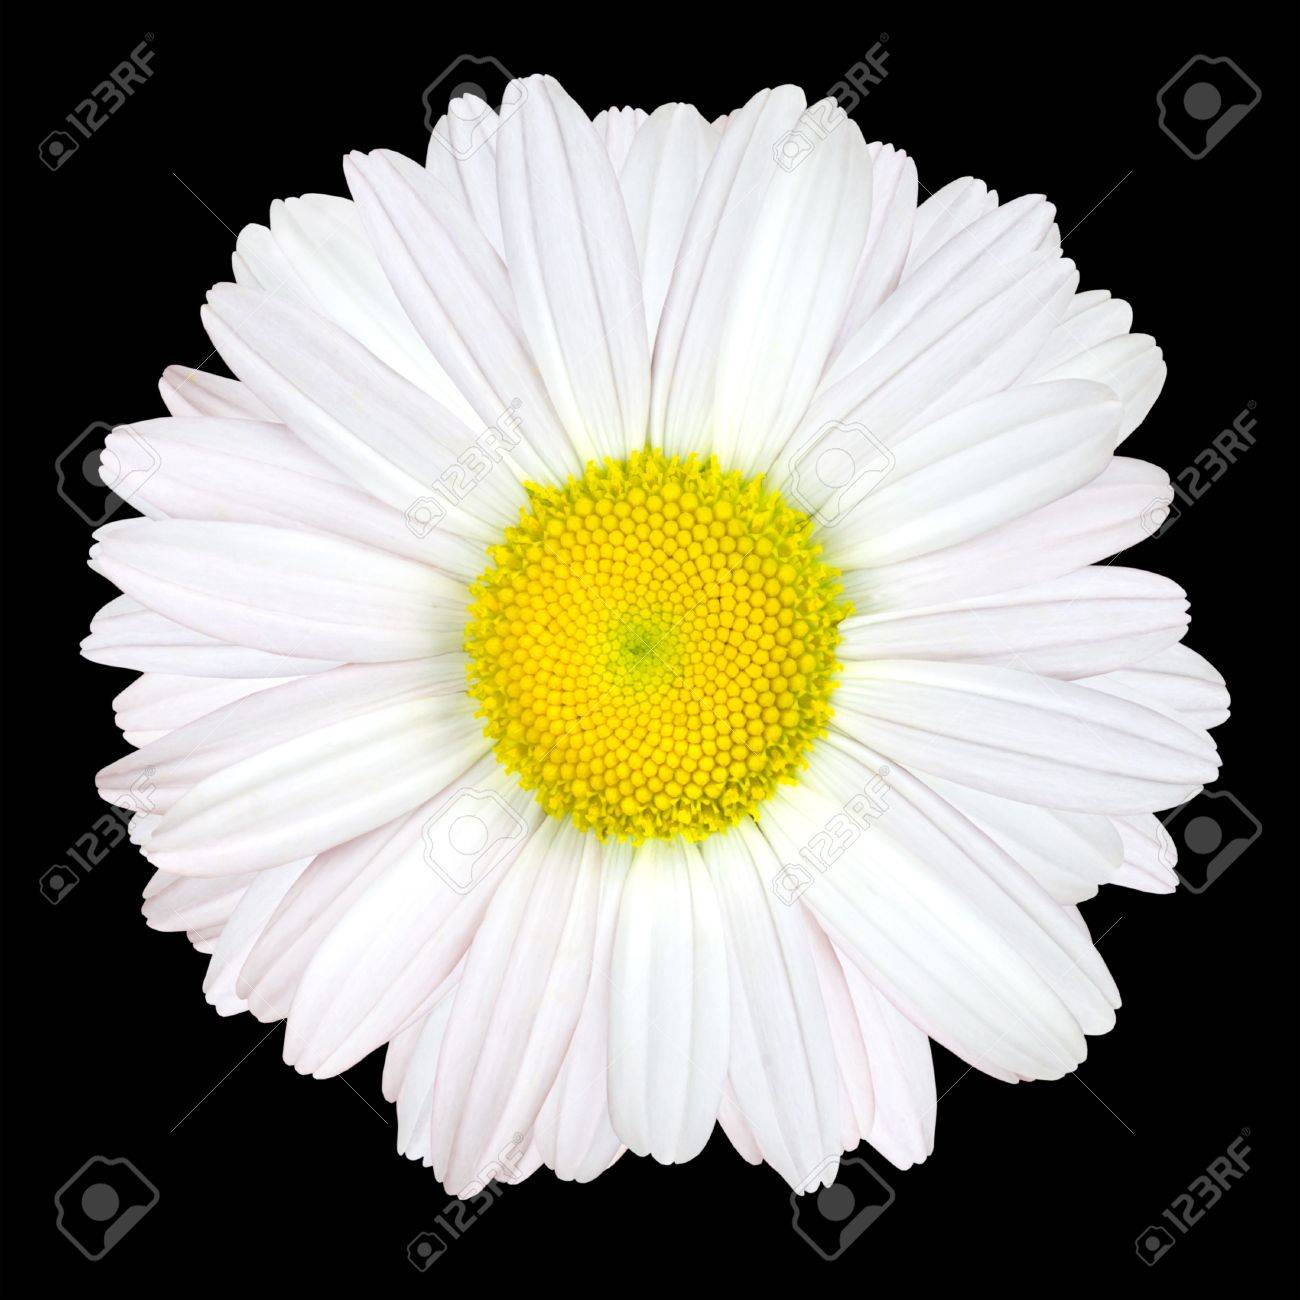 White Daisy Flower Isolated On Black Background White With Stock